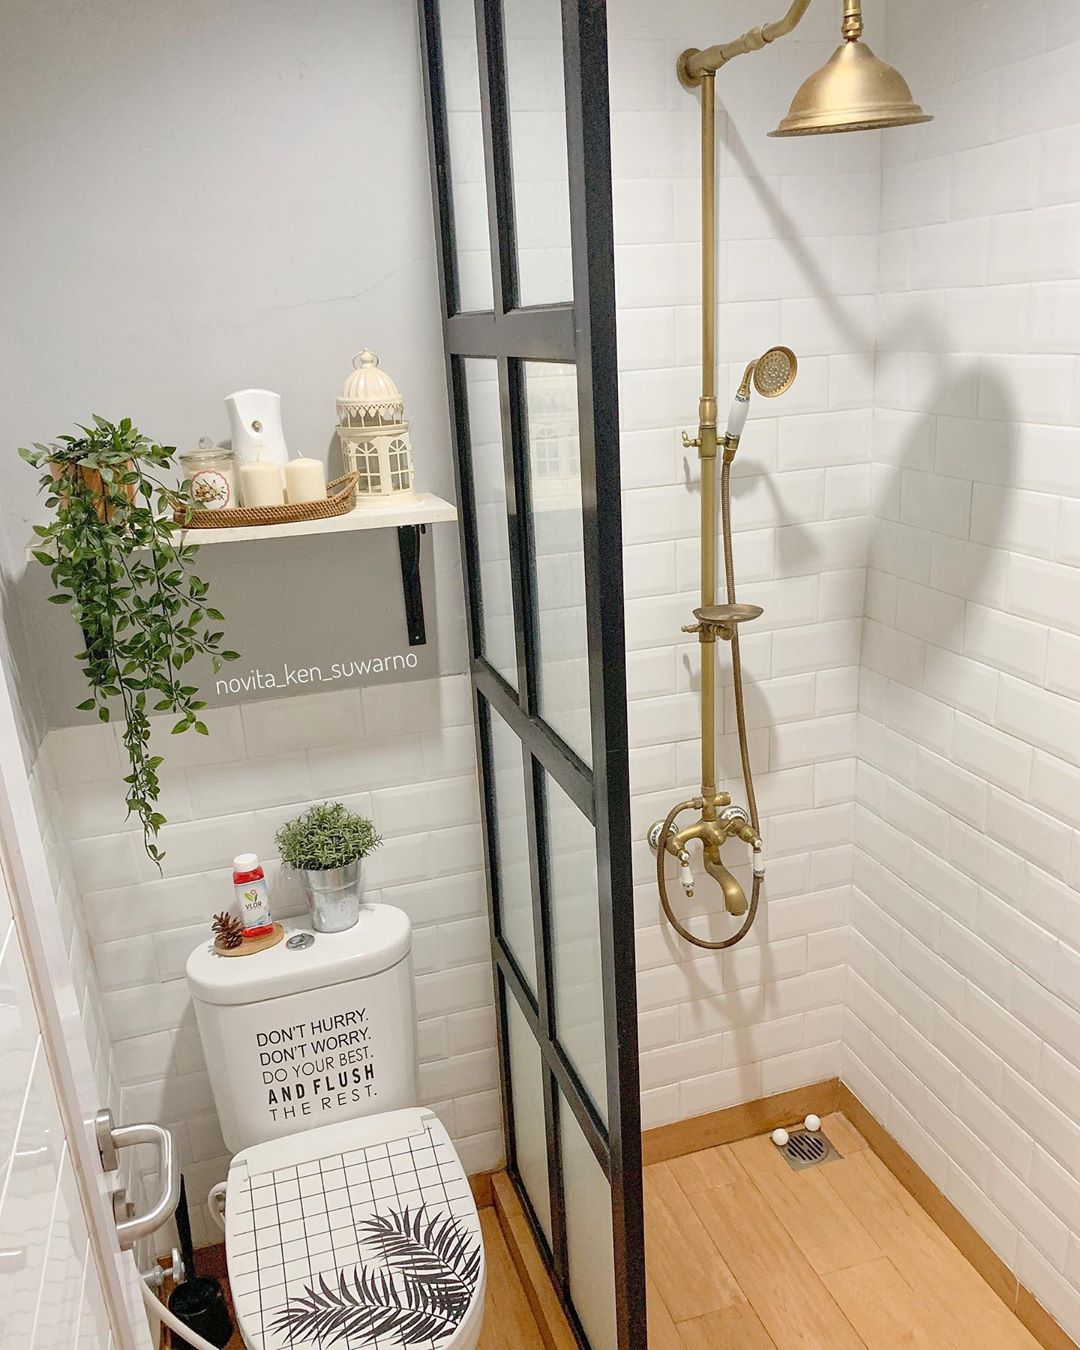 Nordic Bathroomdesign: Who's The Default Again So Lazy To Shower